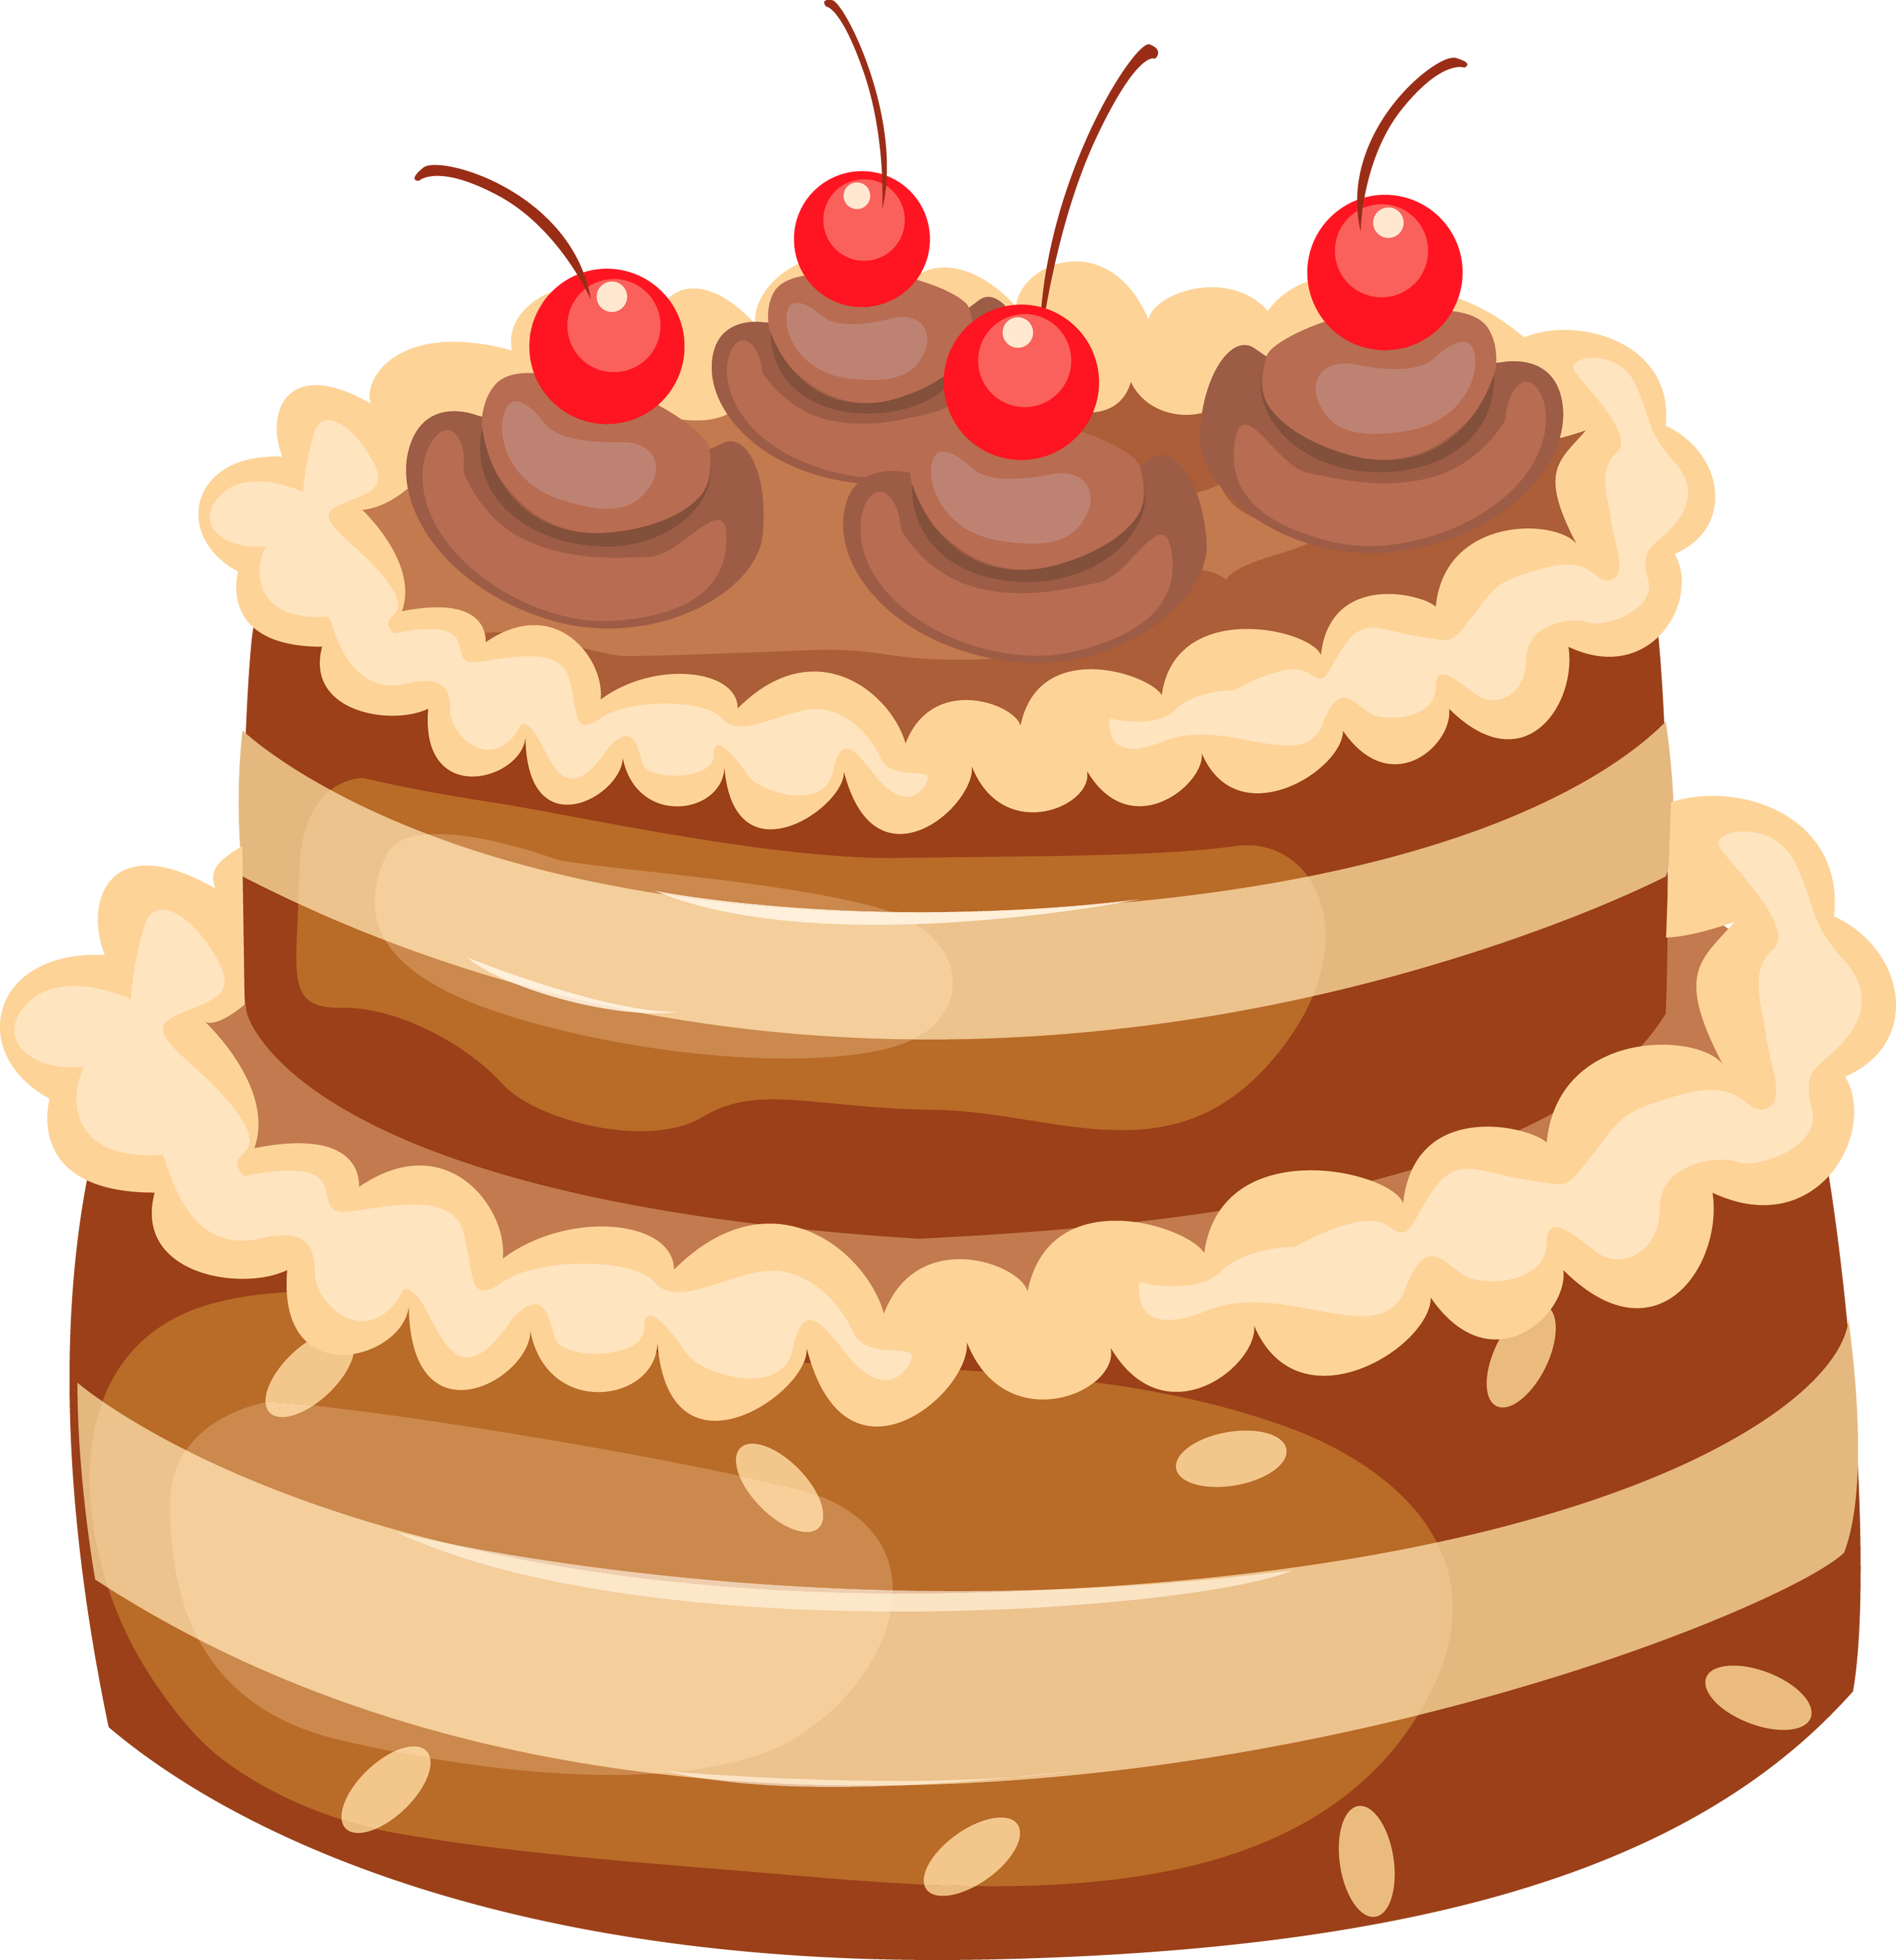 clipart library stock Oreo clipart cake. Chocolate with cherries png